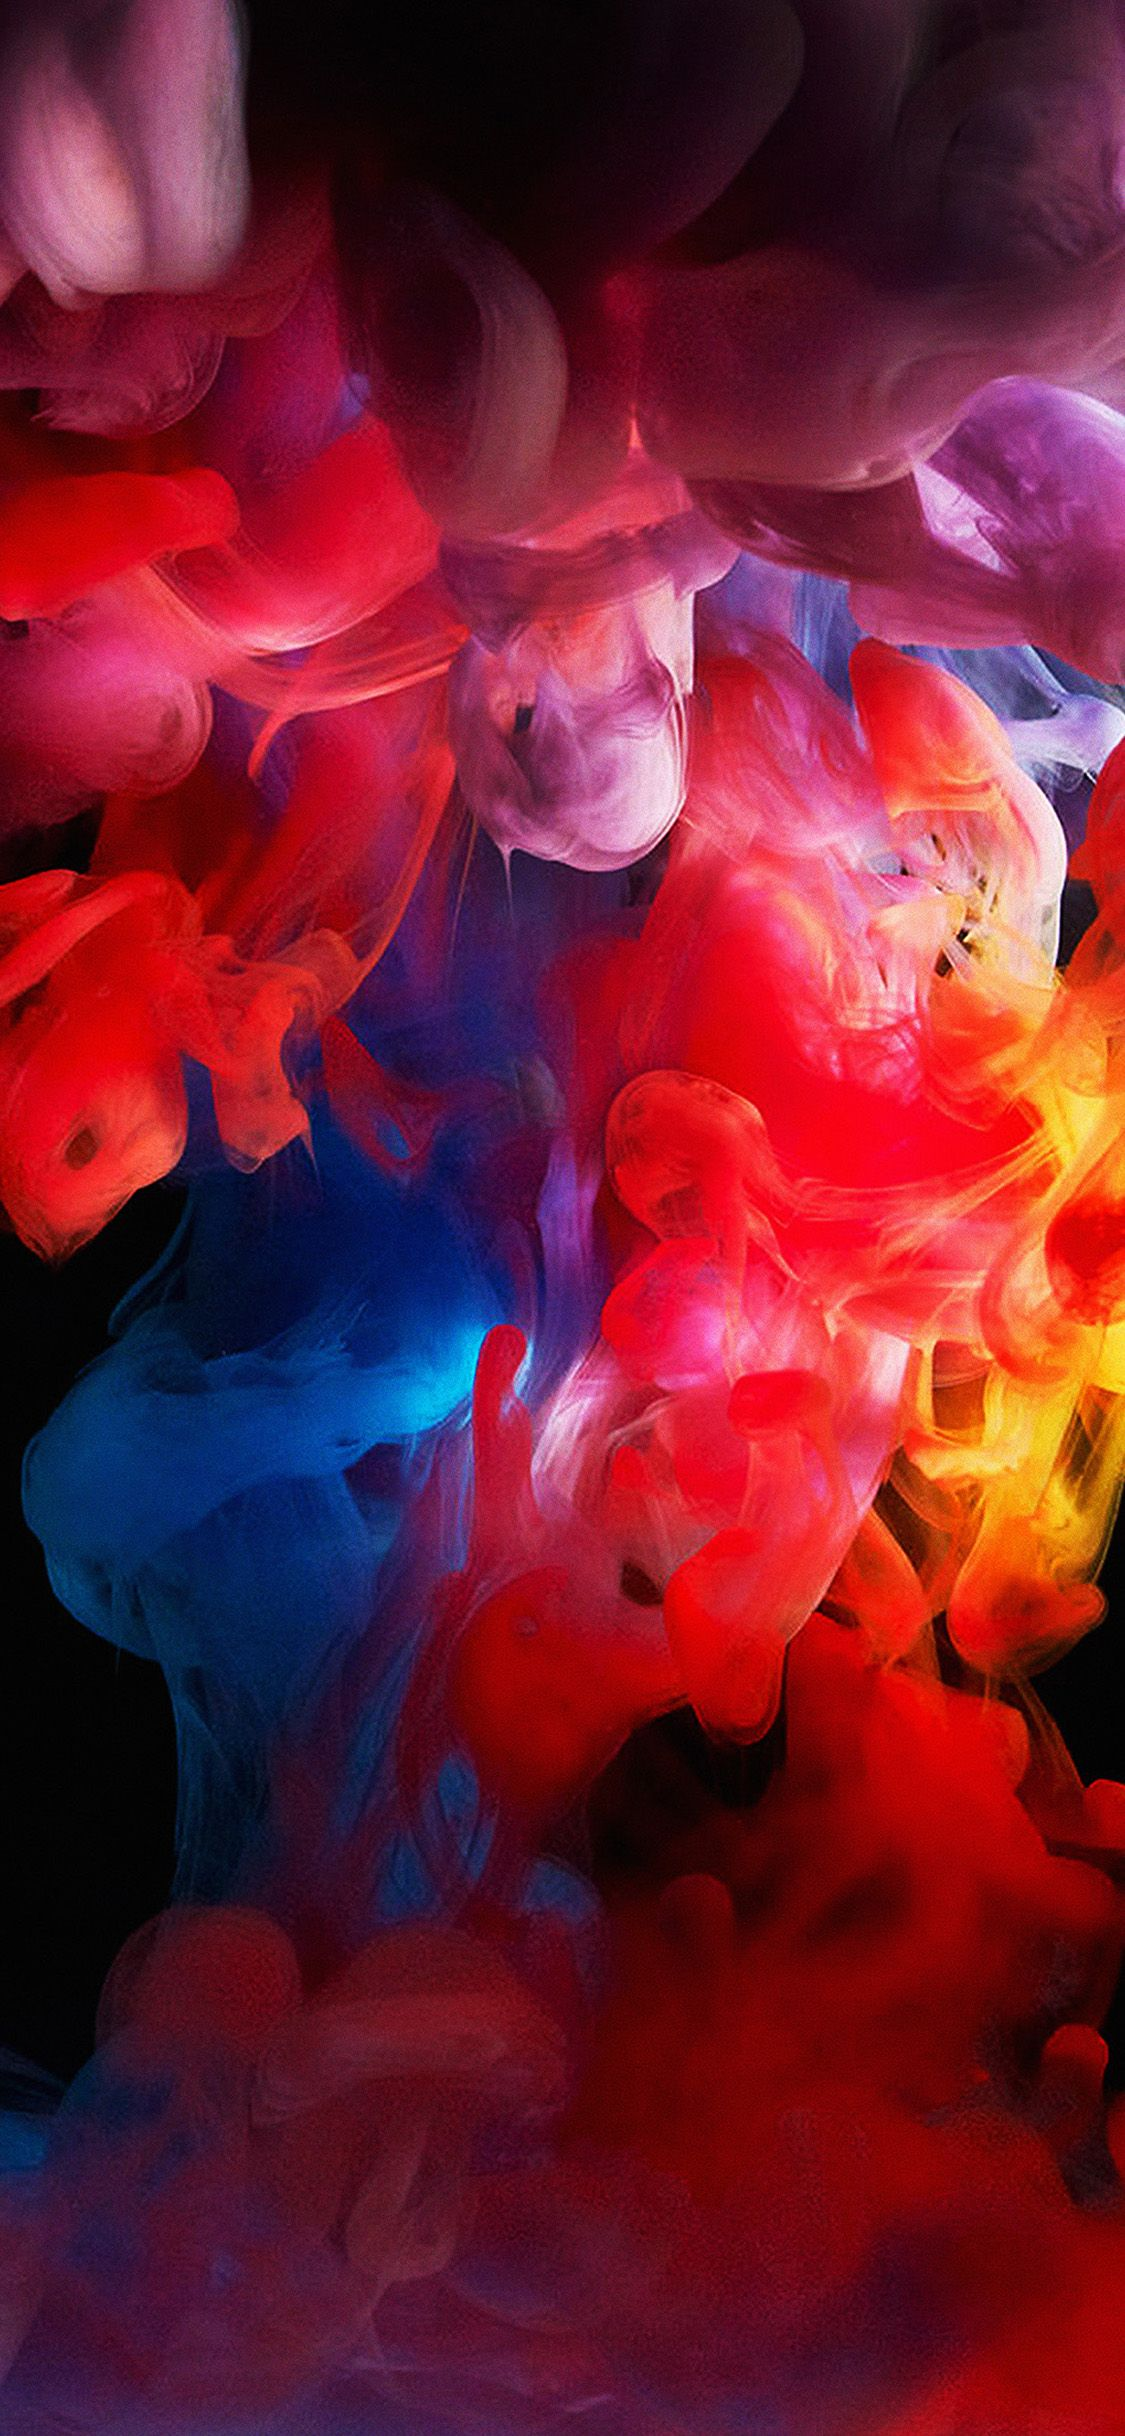 Https All Images Net Iphone Wallpaper Abstract Hd 4k 251 Iphone Wallpaper Abstract Hd 4k 251 Check More At Https Smoke Wallpaper Abstract Stock Wallpaper